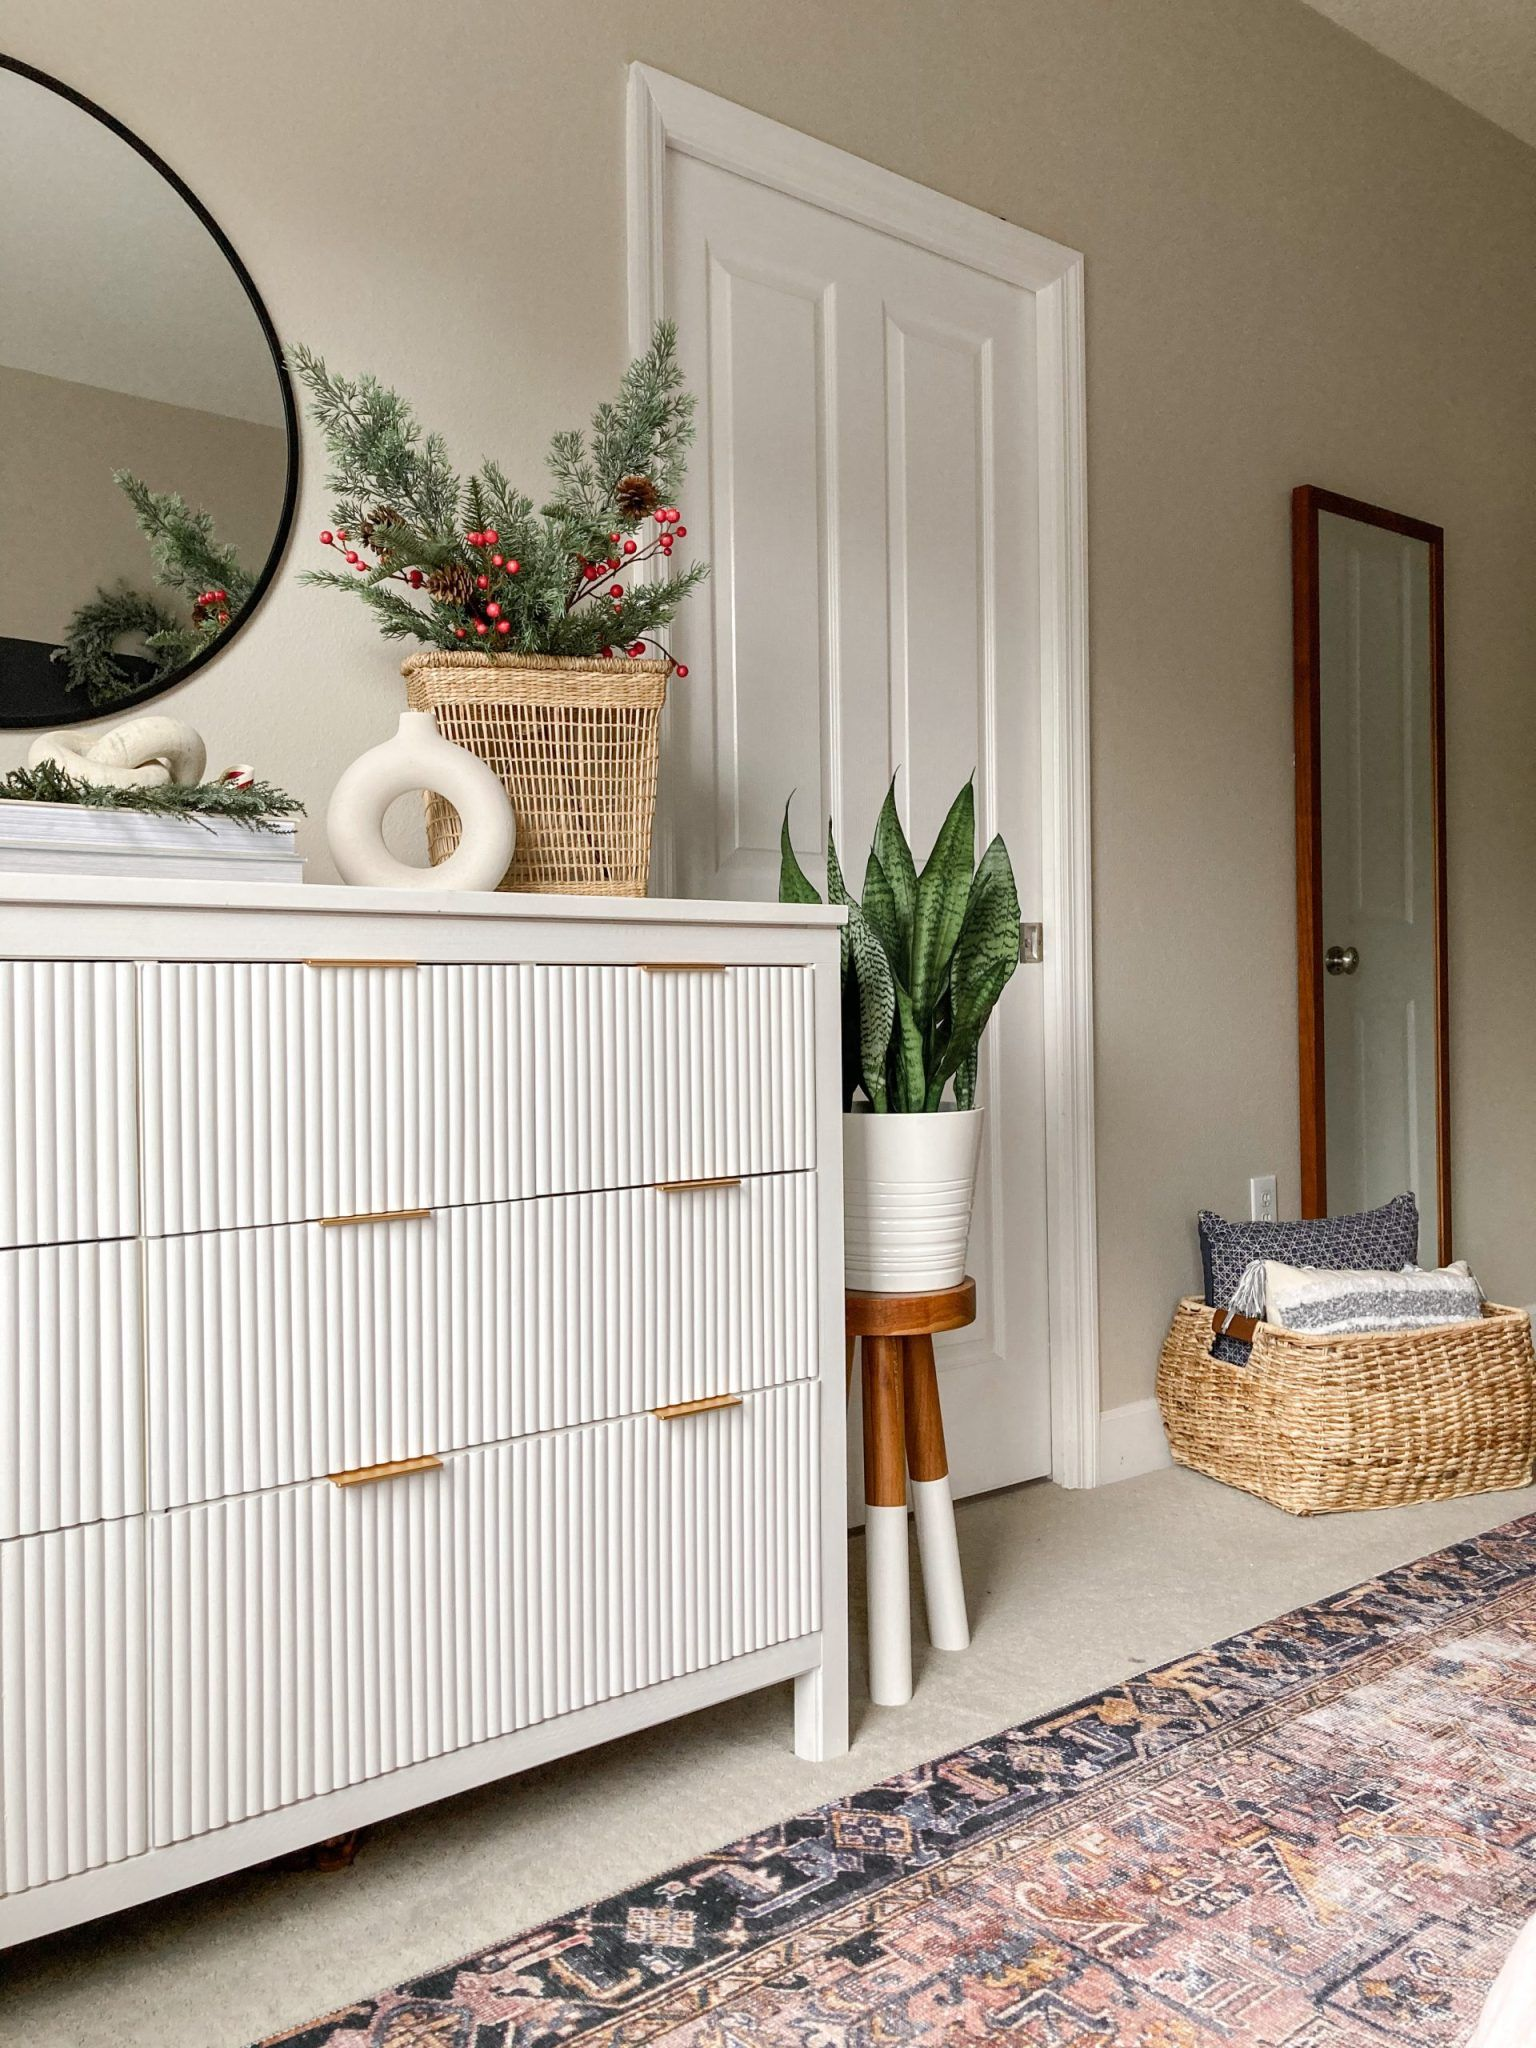 Photo of Ikea Hemnes to Fluted Dresser | XO My HomeDIY Projects My most popular DIY of 2020 was definitely my Ikea Hemnes Dresser hack. I turned a very simple and popular Ikea piece of furniture into a much higher end looking (West Elm-ish) dresser. One of my favorite things about this project is that it represents what I am most passionate about, and that is sharing […]DIY Projects